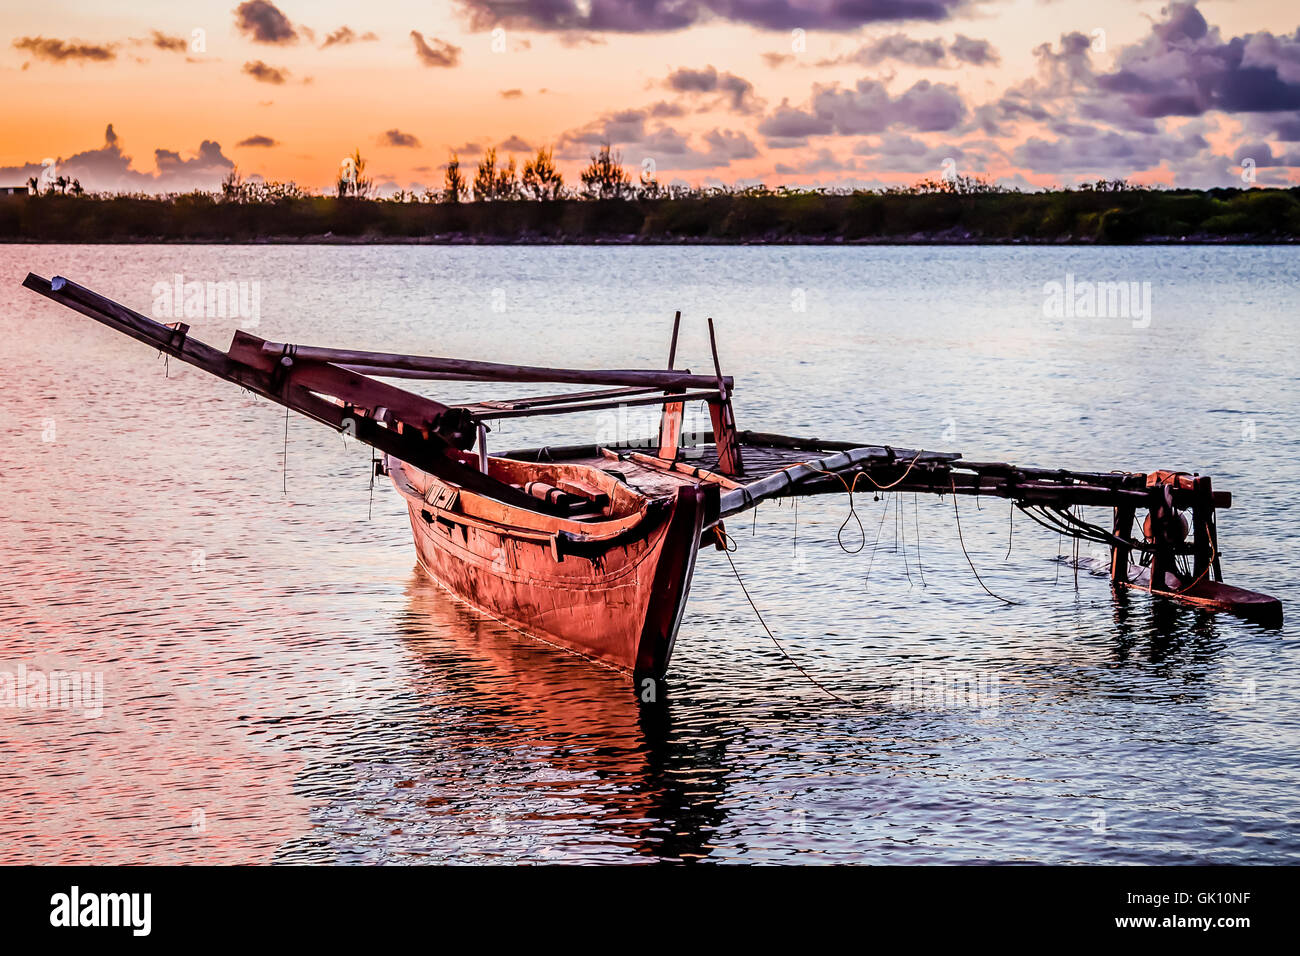 A wooden Micronesian canoe anchored in the bay at sunset. - Stock Image